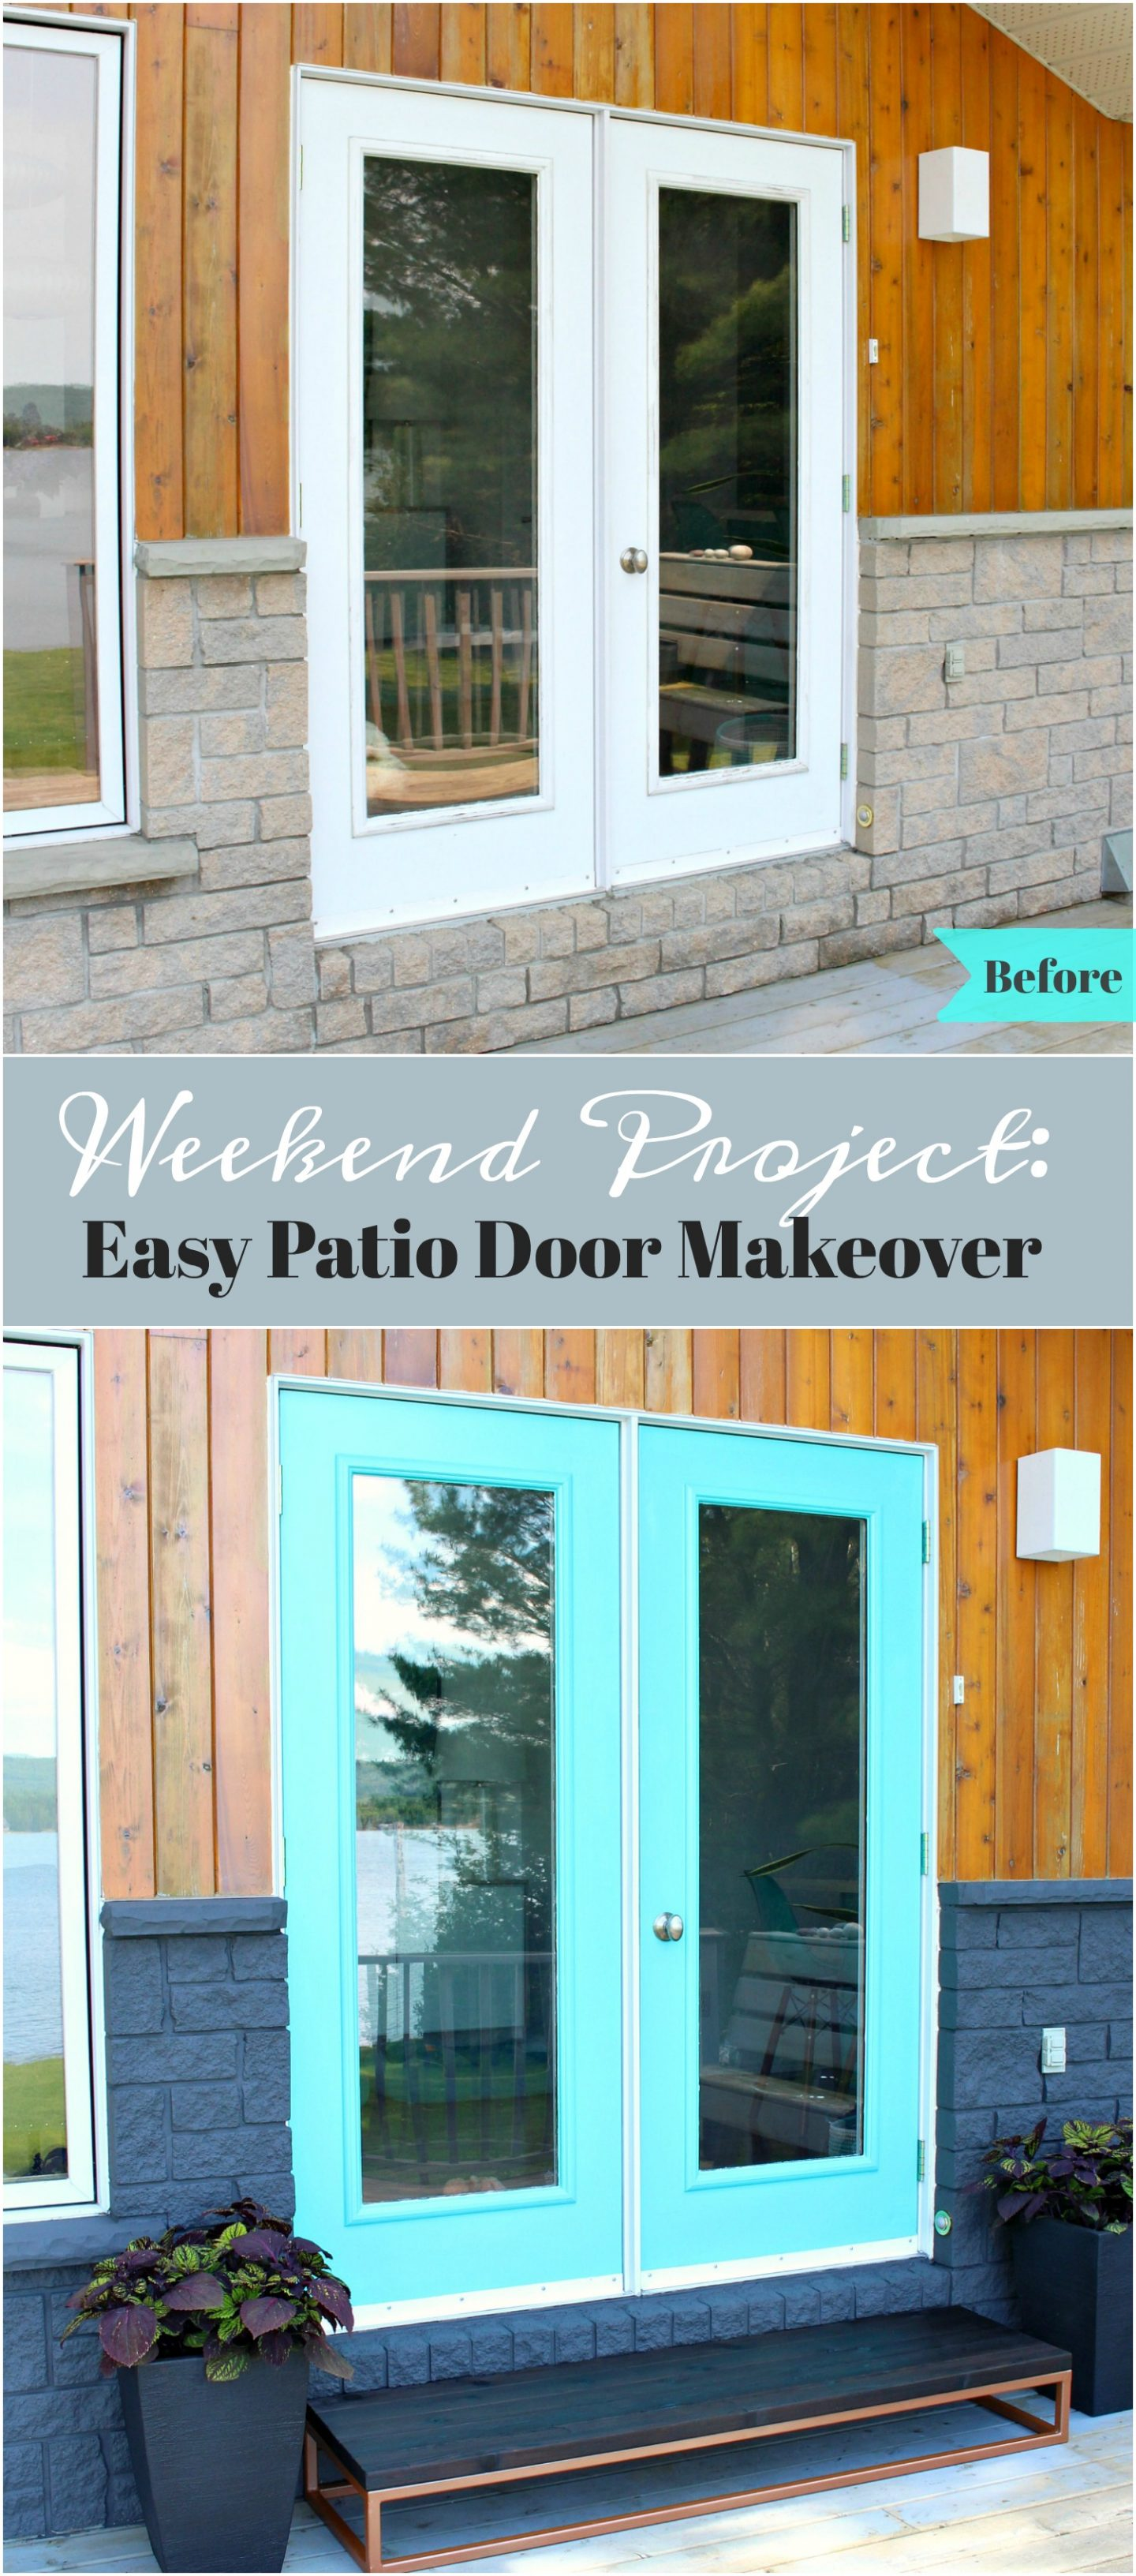 Patio Door Makeover - Before and After